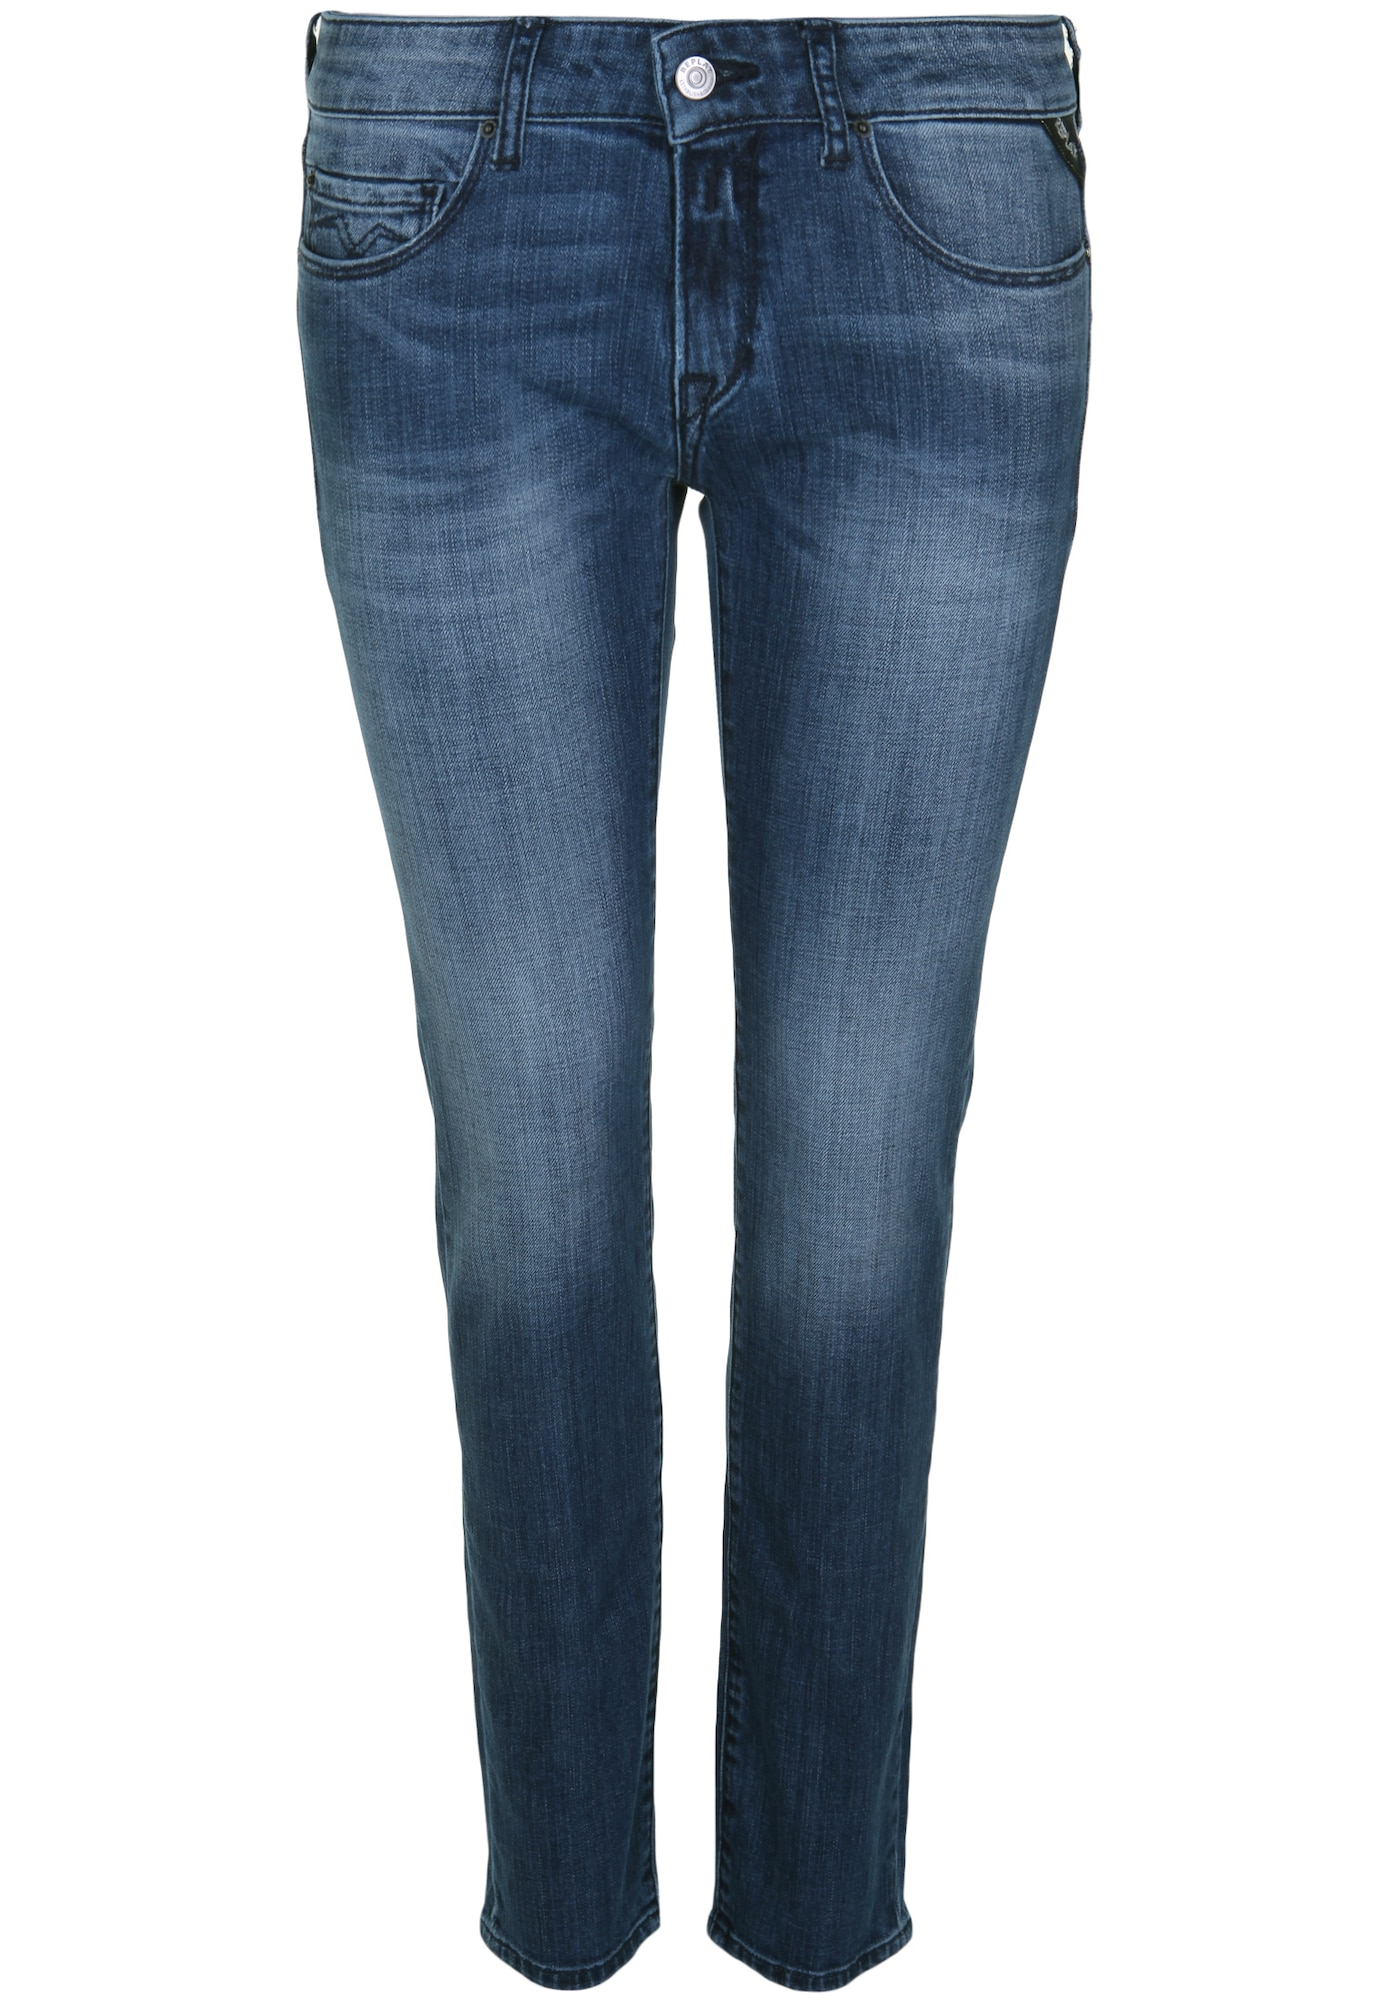 REPLAY Dames Jeans ROSE MID BLUE blauw